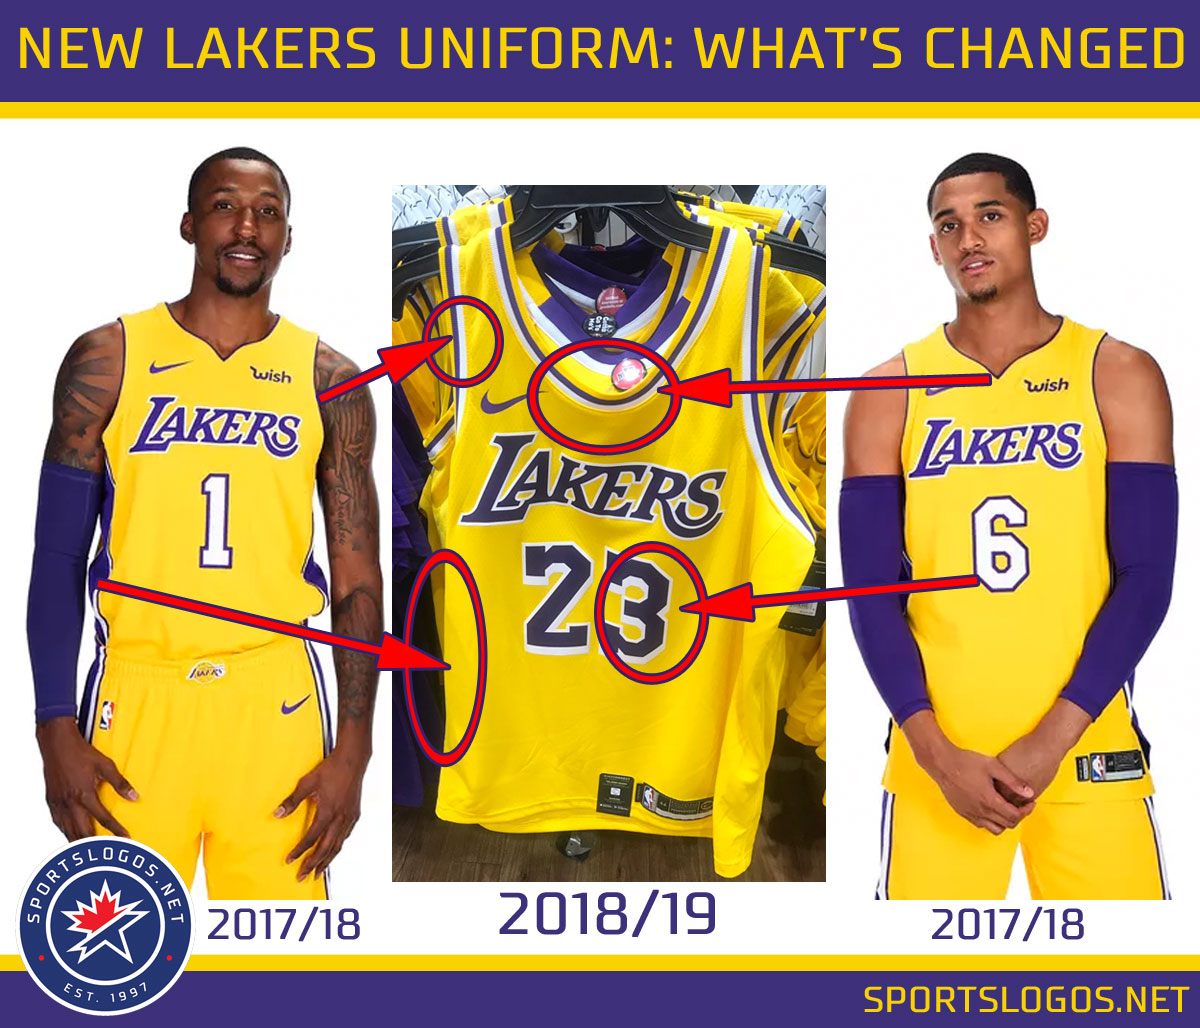 69eb5450289 Comparing Lakers uniform changes. Note the